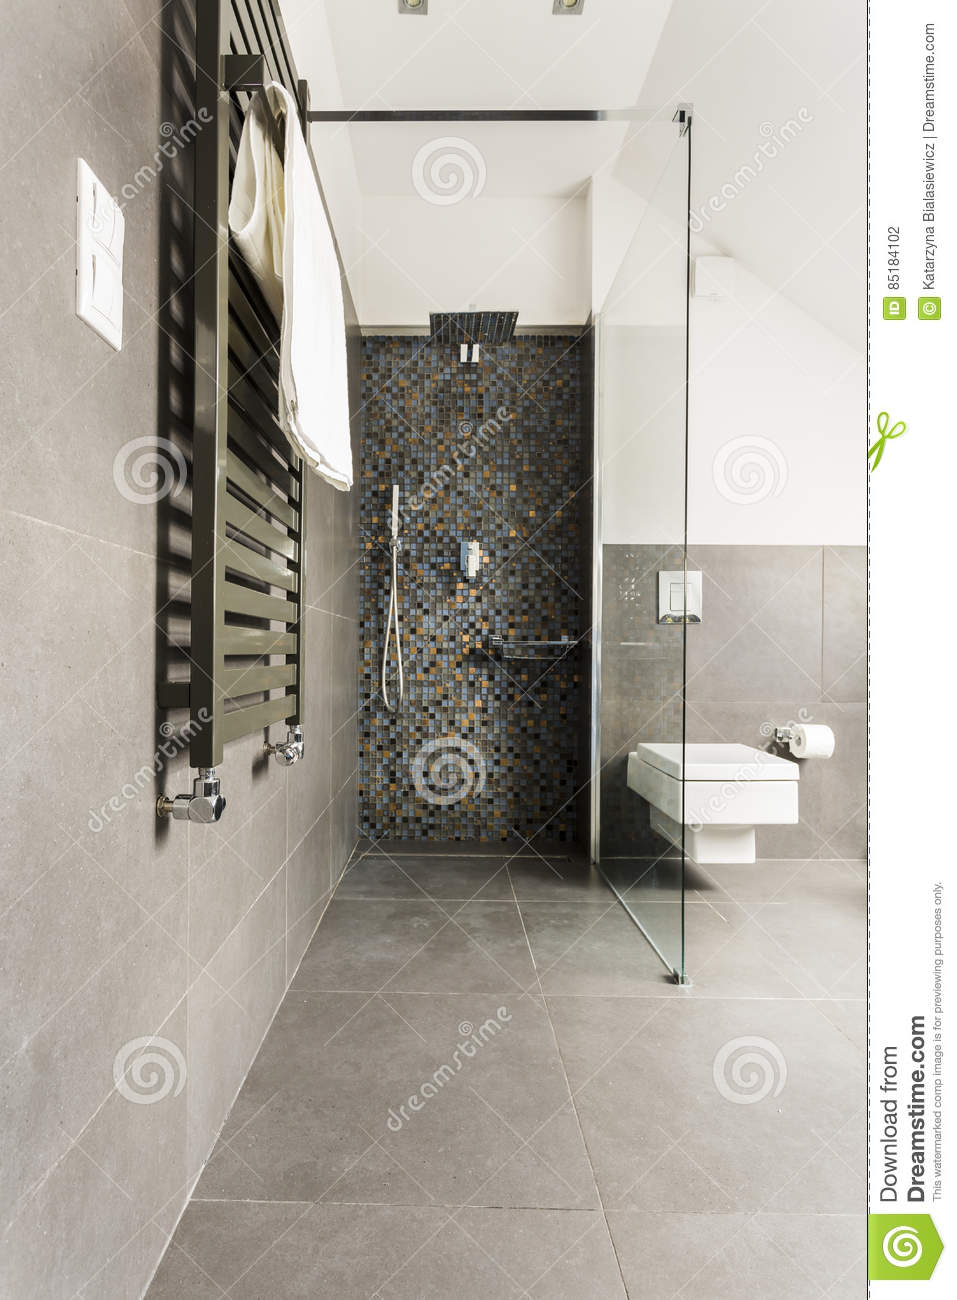 Grey Bathroom With Shiny Tiles Stock Photo Image Of Light Paper